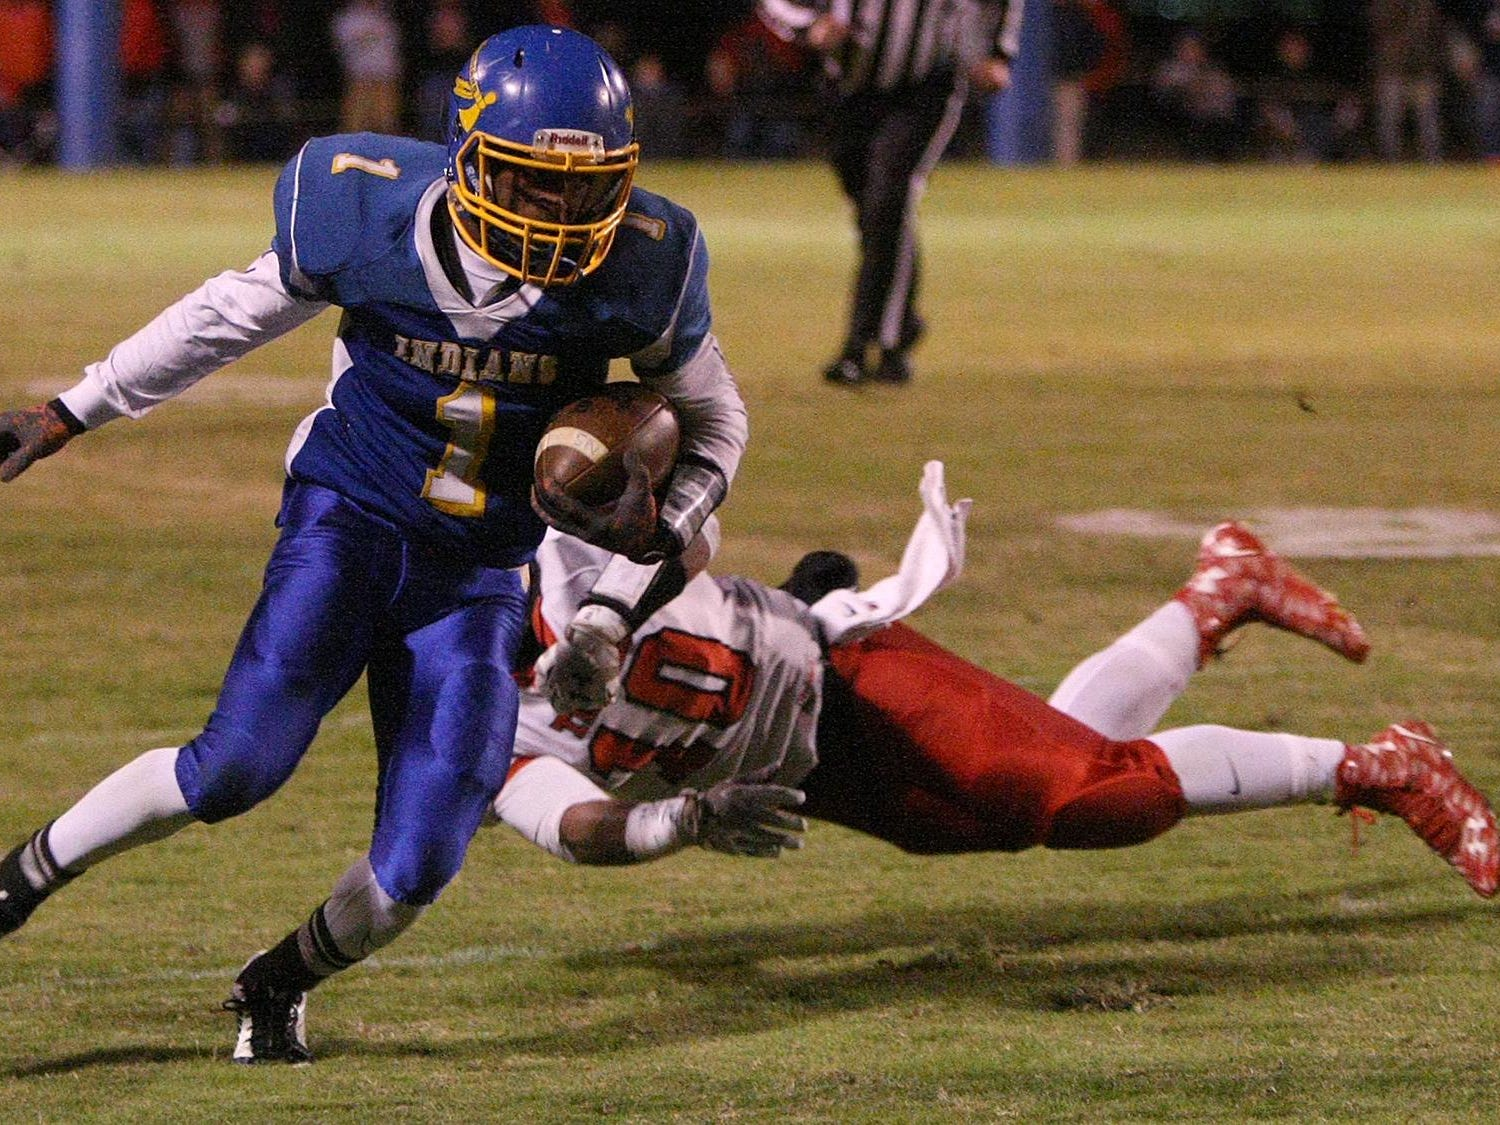 North Side's Darius Brown (1) sheds a tackle from Lexington's Darrius Bomer (10) at North Side High School on Friday.